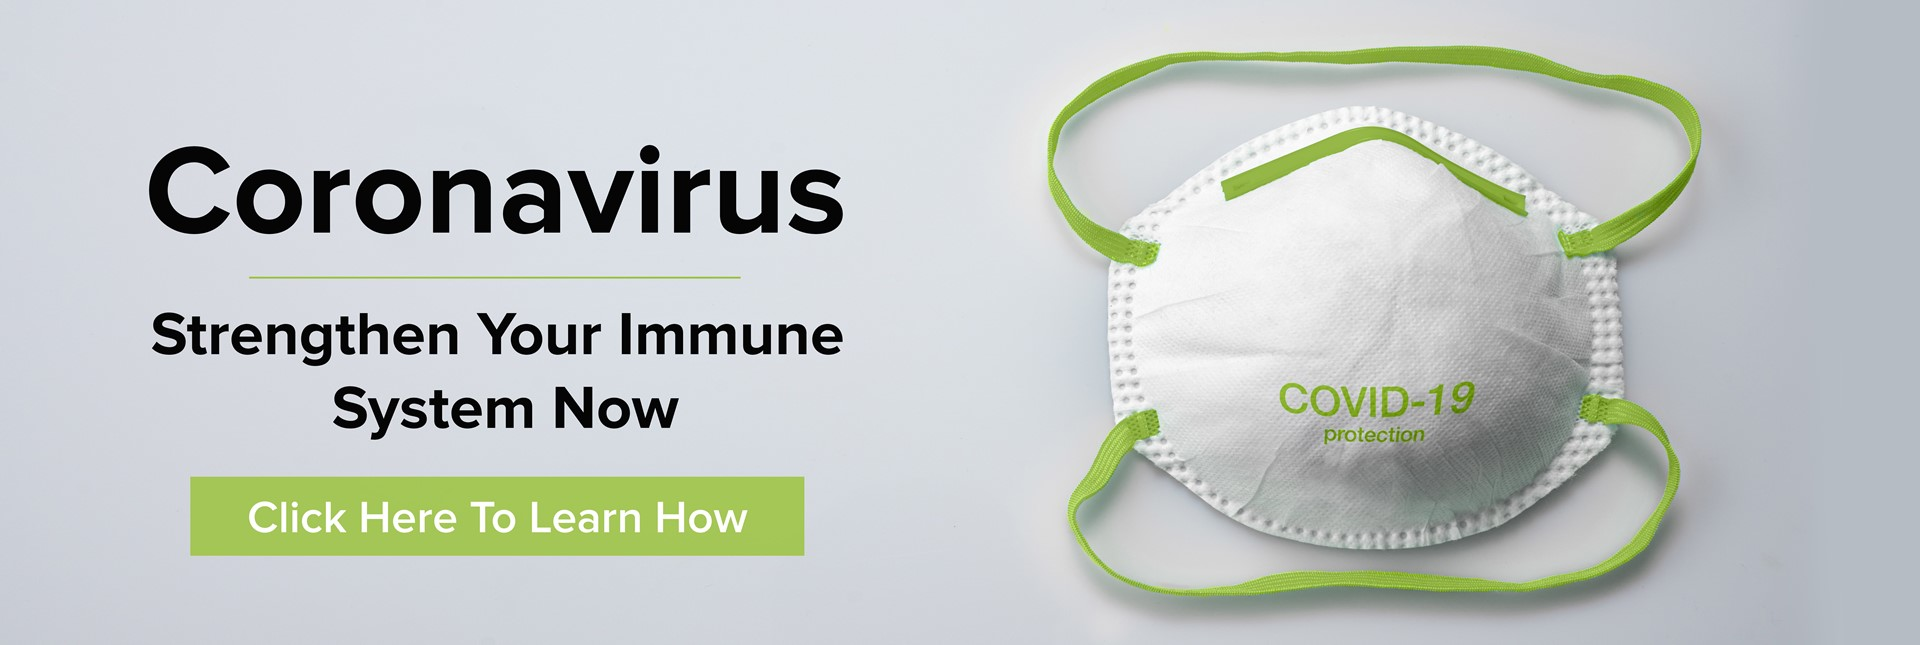 Coronavirus: How to strengthen your immune system